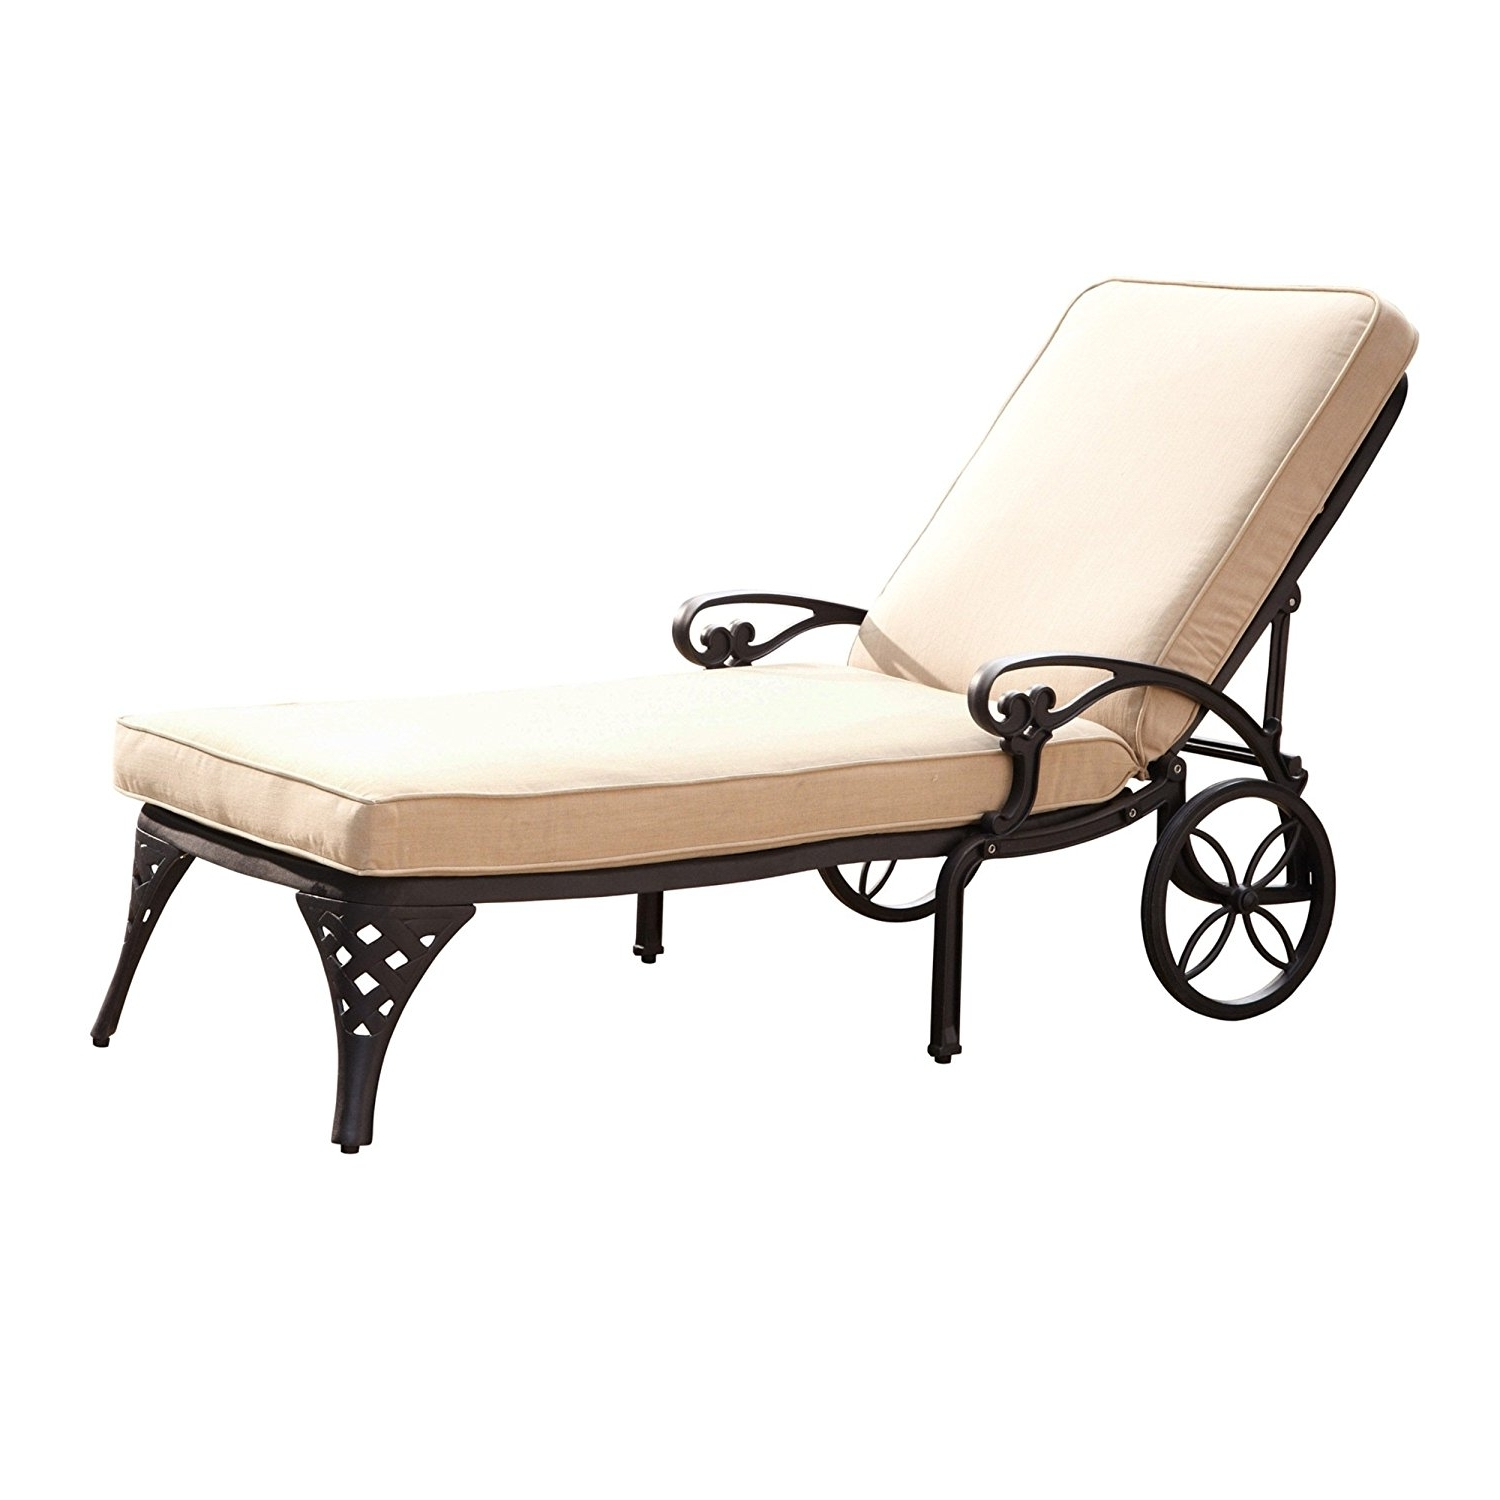 Favorite Metal Chaise Lounge Chairs Pertaining To Amazon : Home Styles Biscayne Chaise Lounge Chair, Taupe (View 4 of 15)